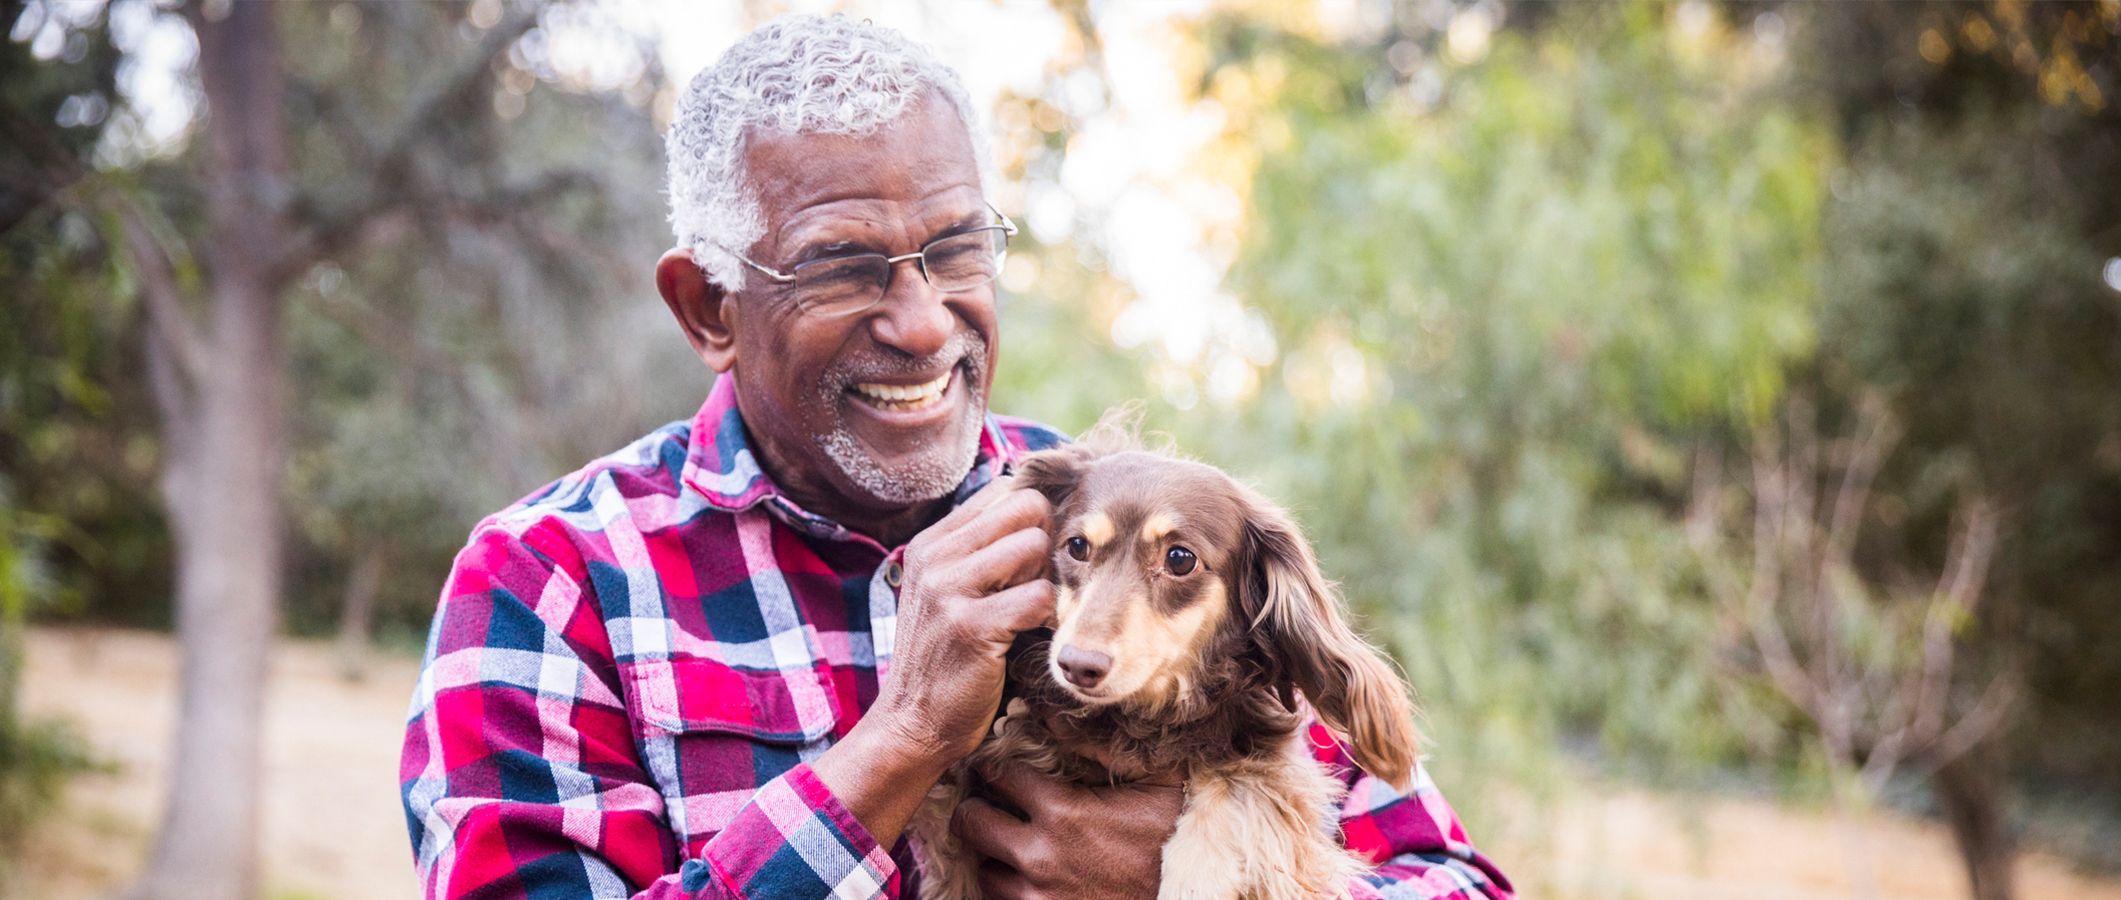 Older American Man Outdoors with Dog